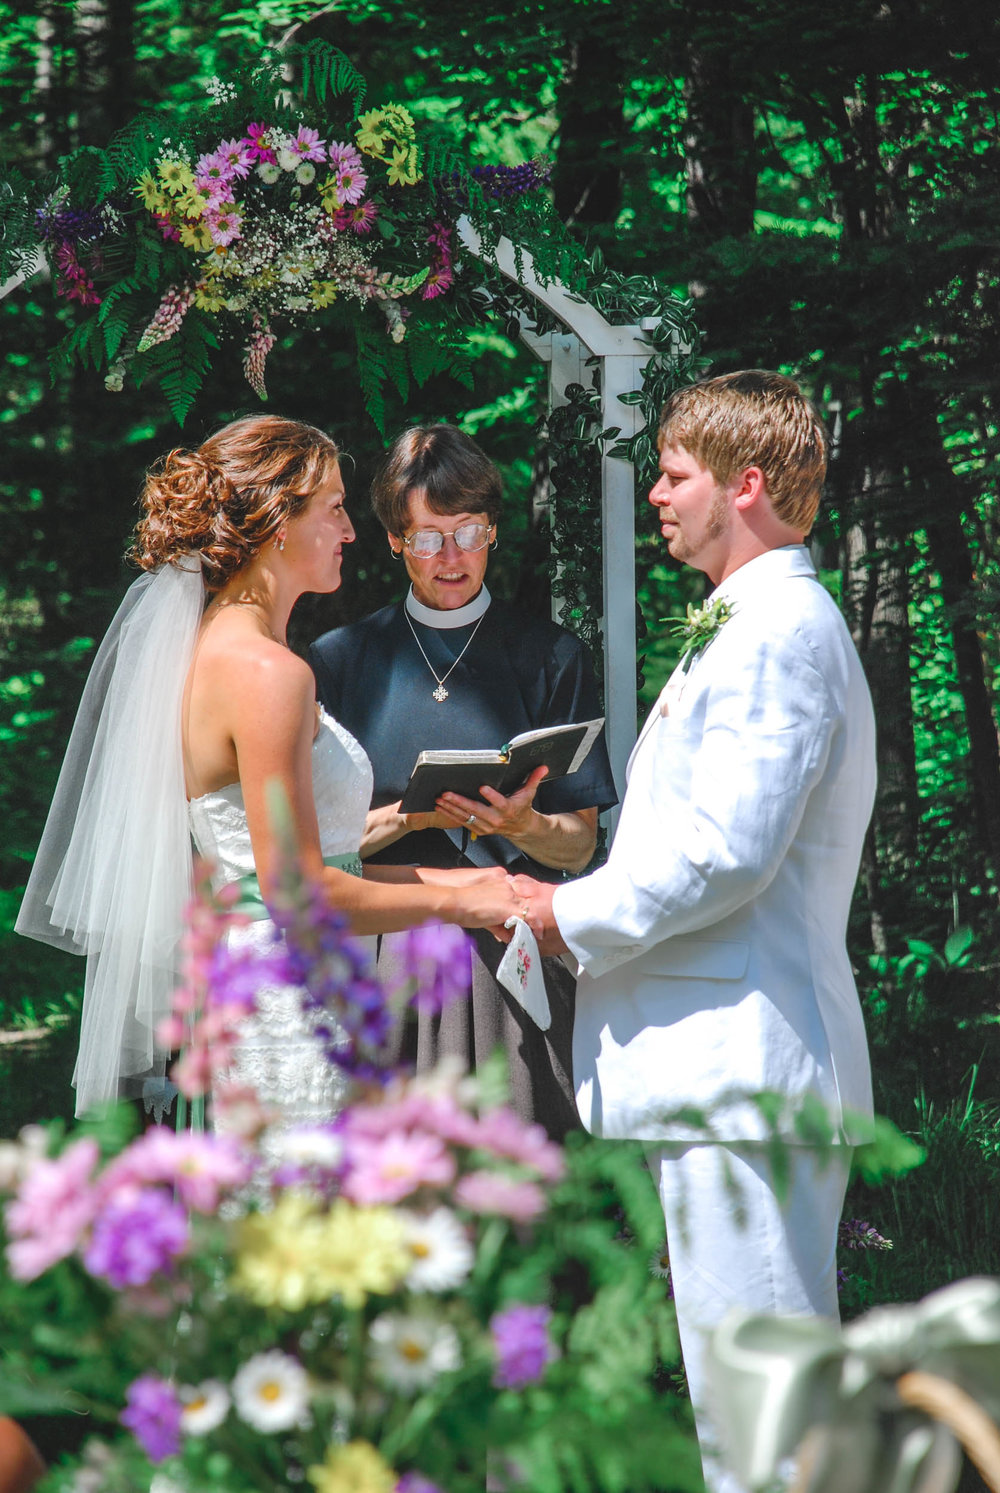 Backyard Wisconsin wedding vow exchange